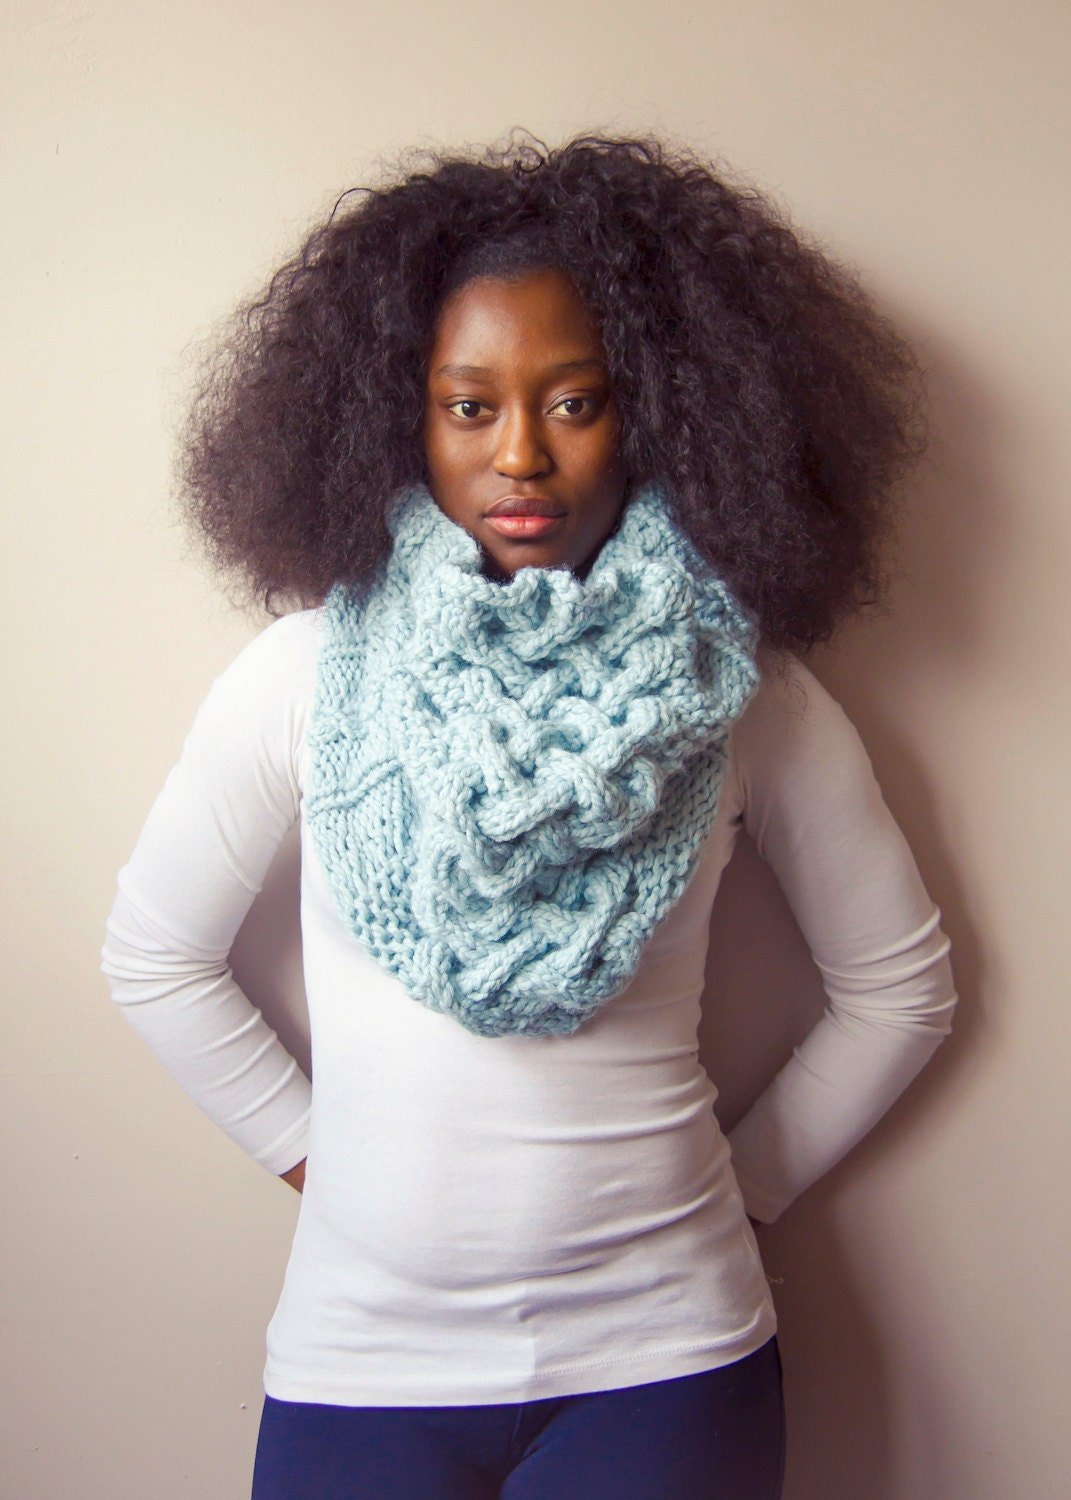 Oversized Cowl, Baby Blue Scarf, Cable Knit Cowl, Chunky Cowl, Hand Knit Infinity Scarf, Light Blue Infinity Scarf, Blue Shawl, - EmbraceTheLamb